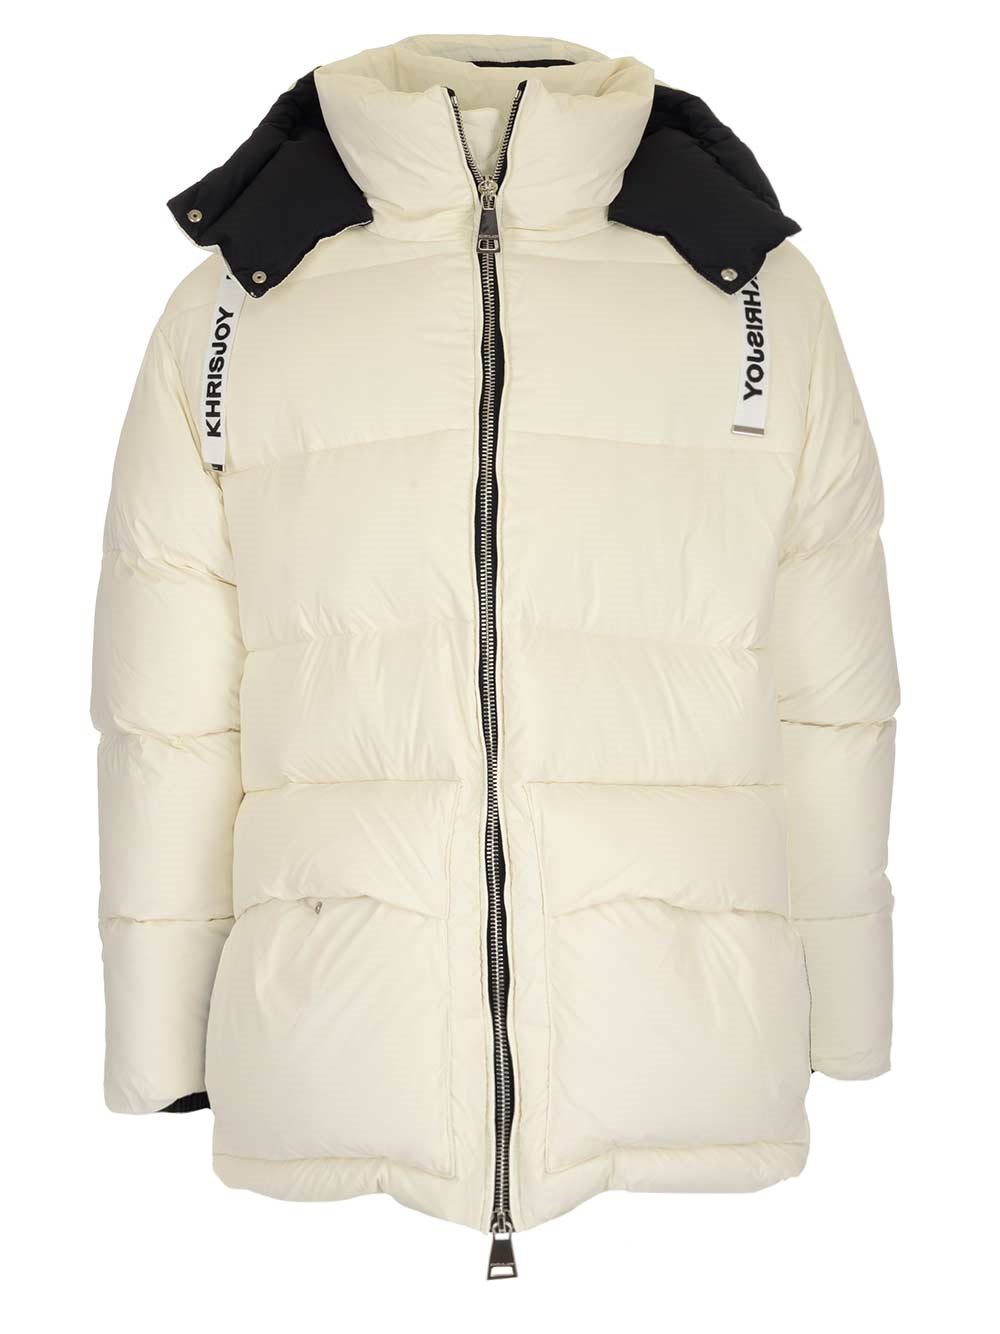 KHRISJOY White Downjacket